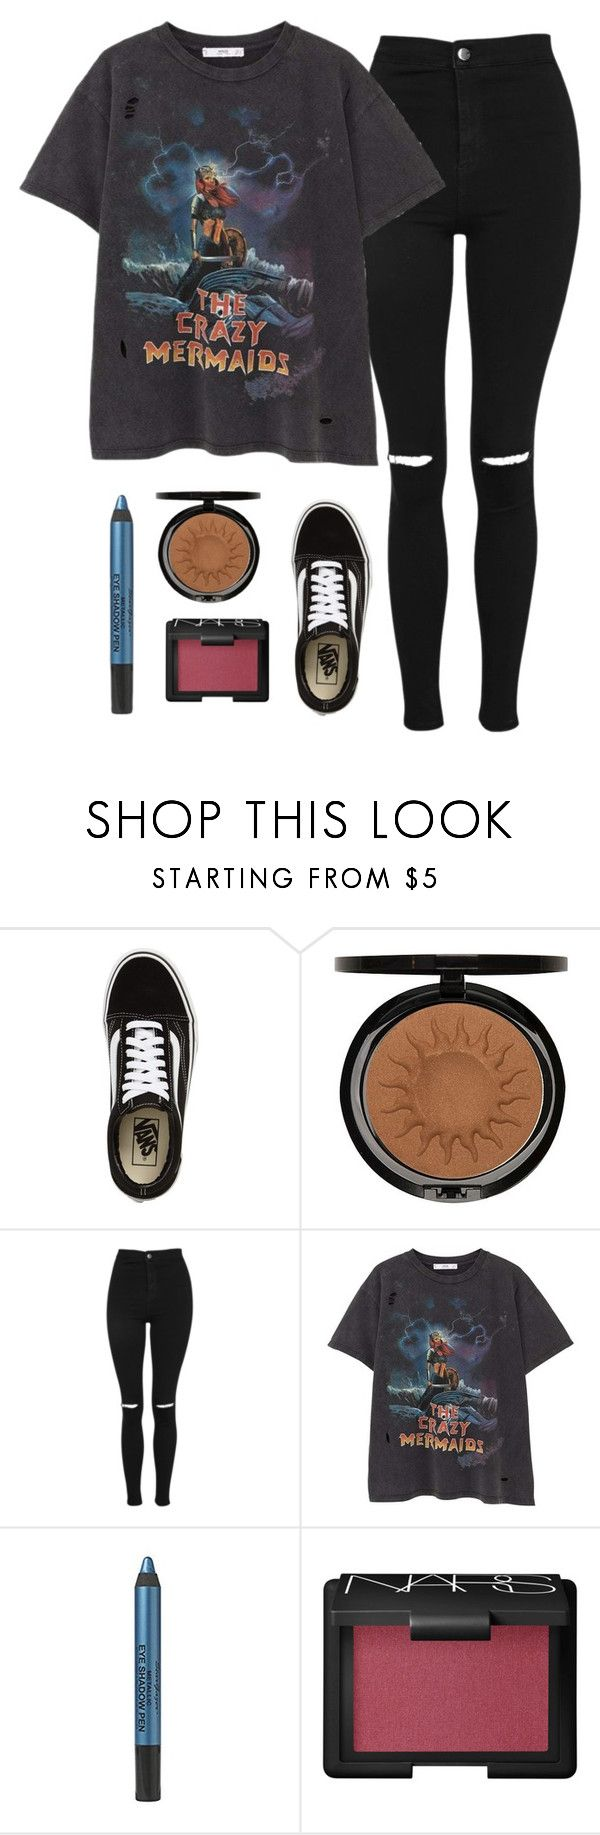 """""""back to school outfit"""" by noeliahoran99 ❤ liked on Polyvore featuring Vans, Iman, Topshop, MANGO, NARS Cosmetics, black, vans and graphictee"""